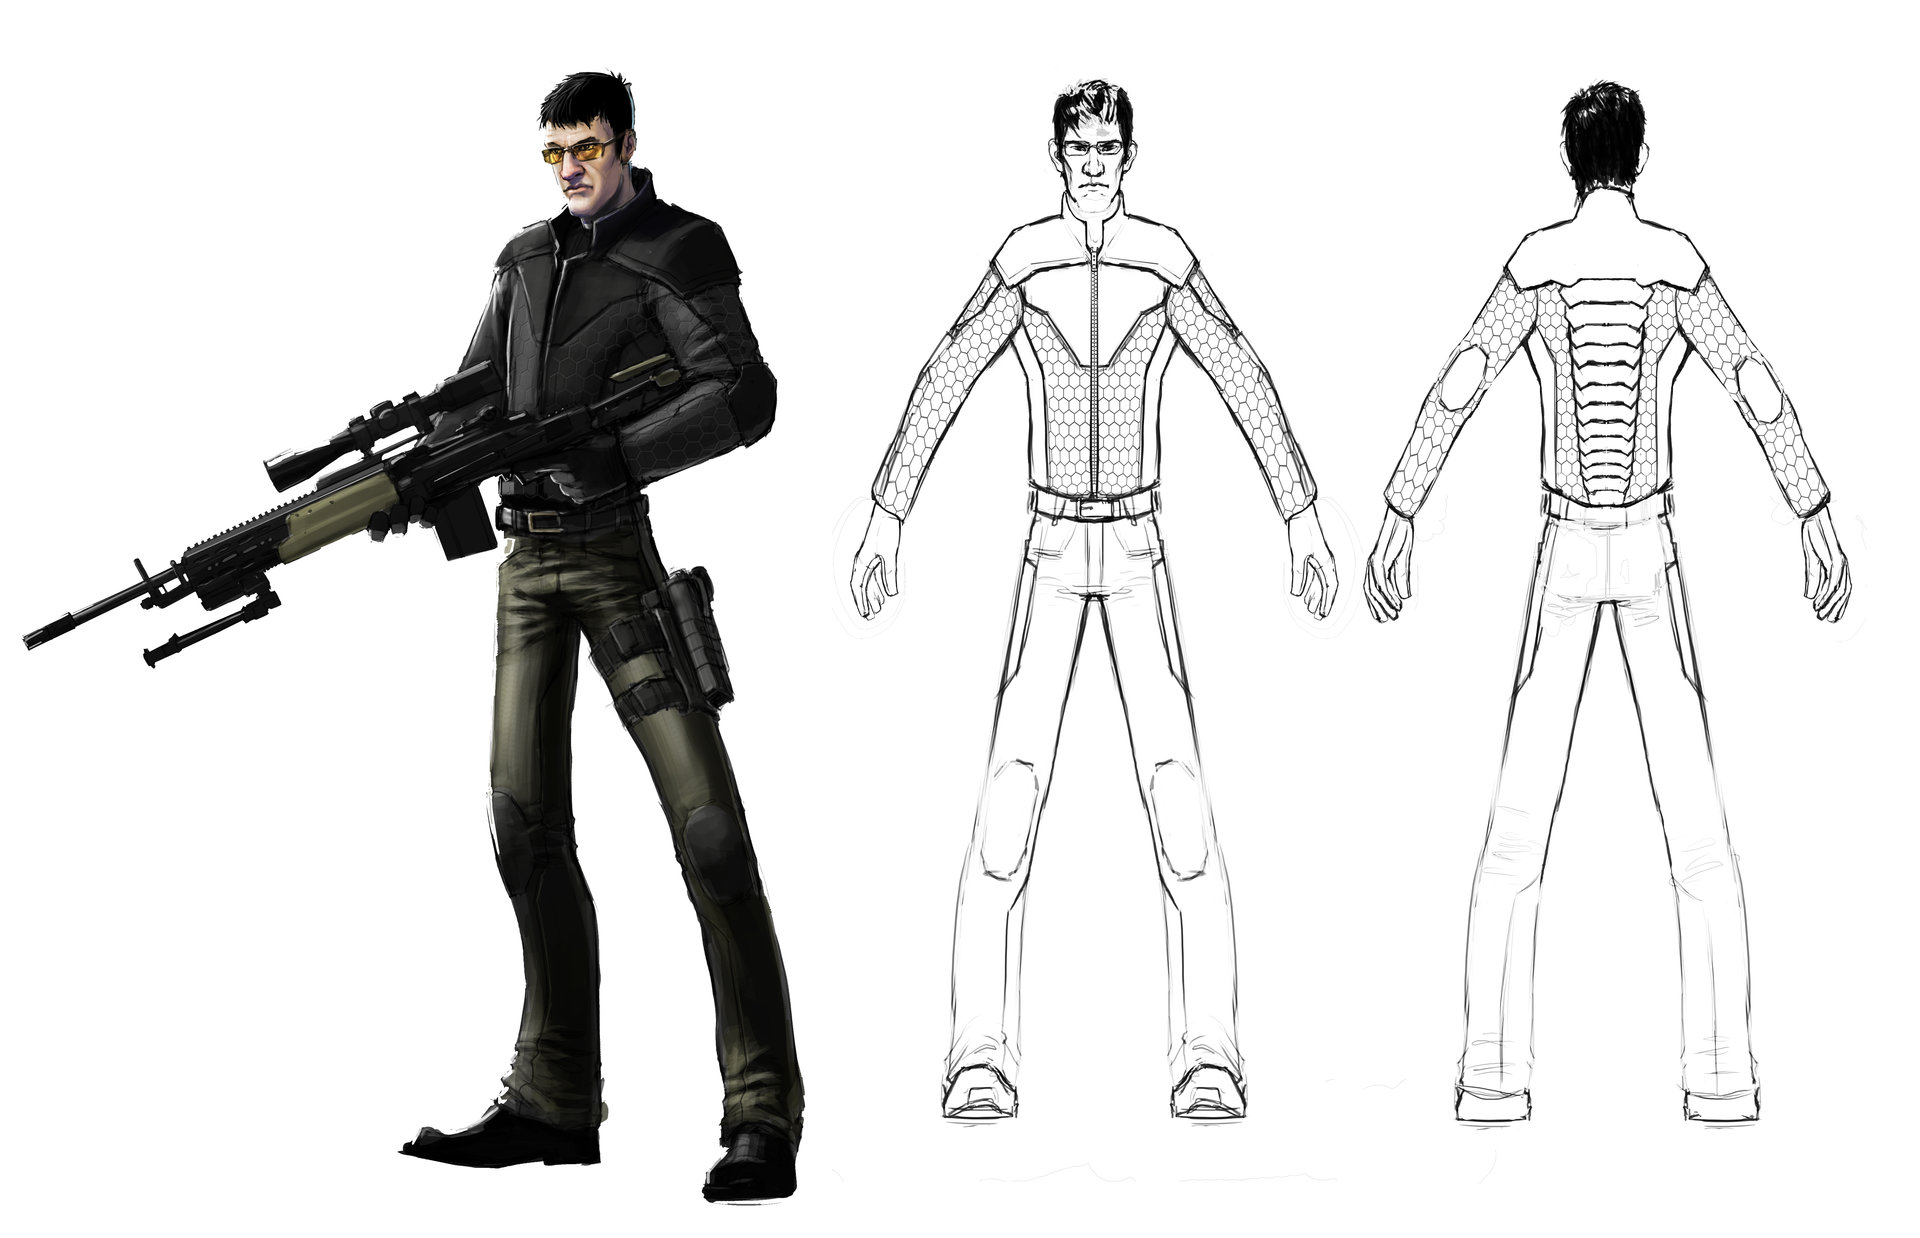 Matthew harris 11hitman turnaround web